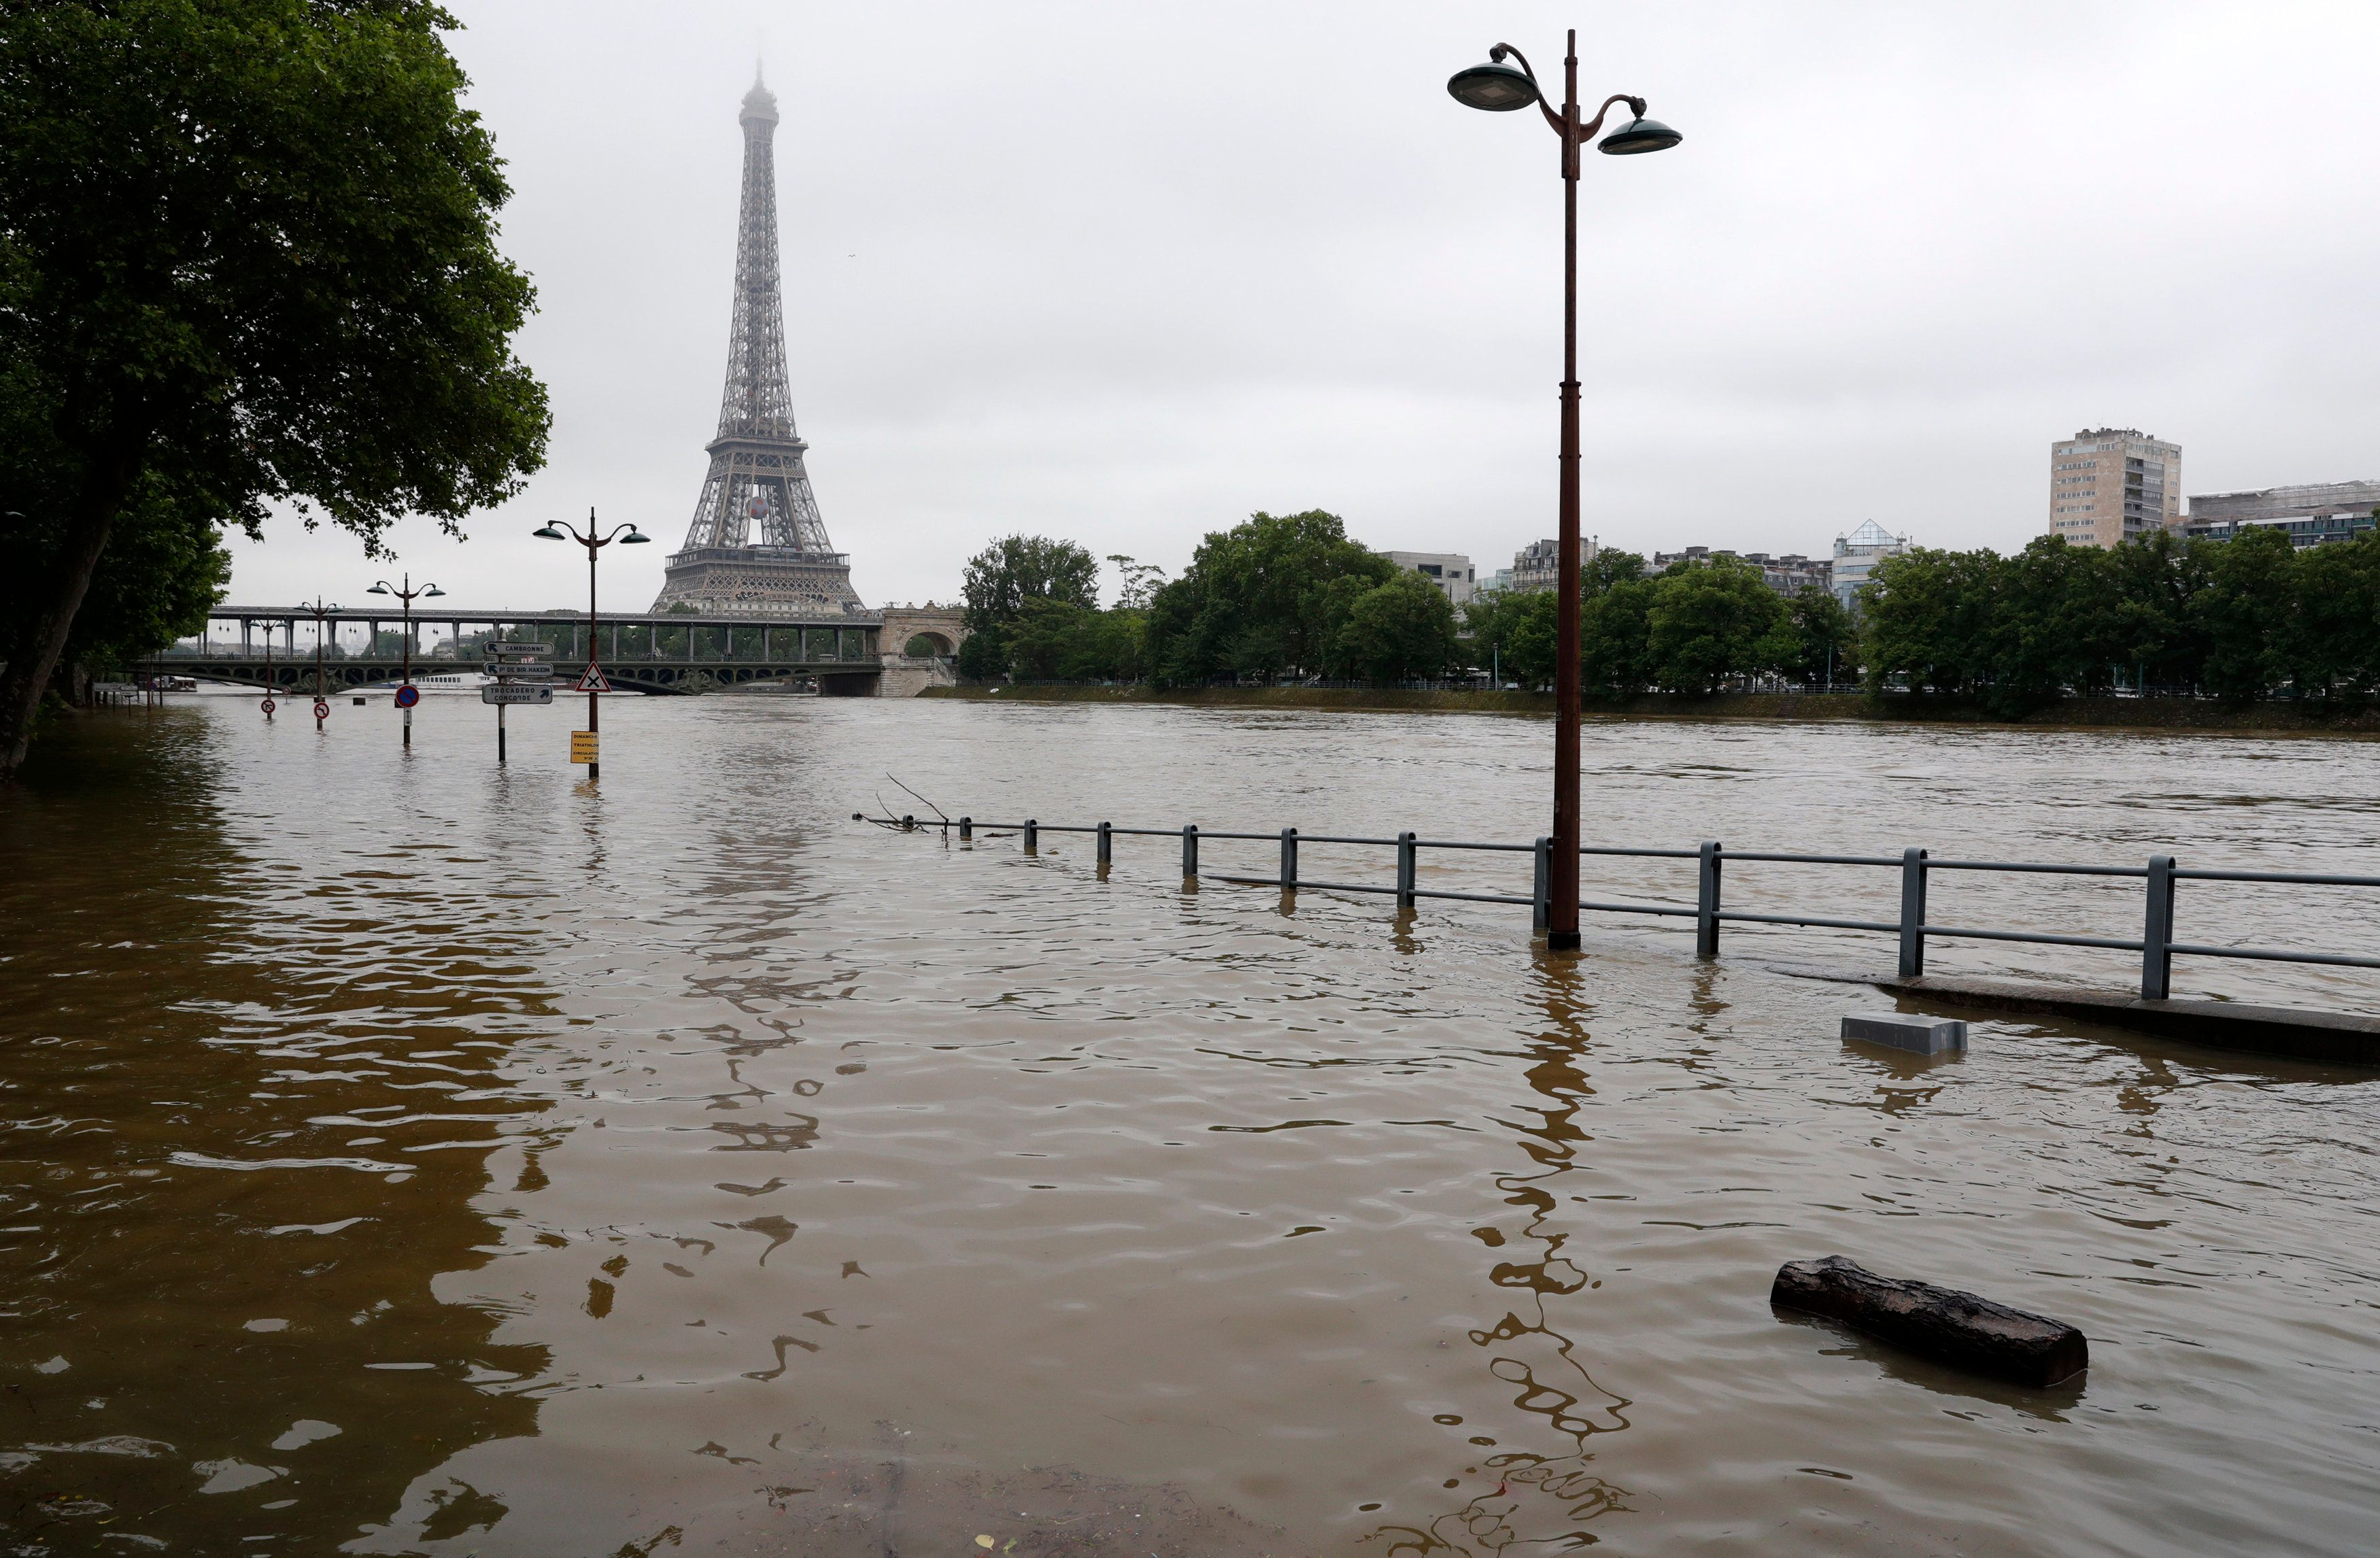 View of the flooded Seine near the Eiffel Tower in Paris onJune 3, 2016, after days of almost nonstop